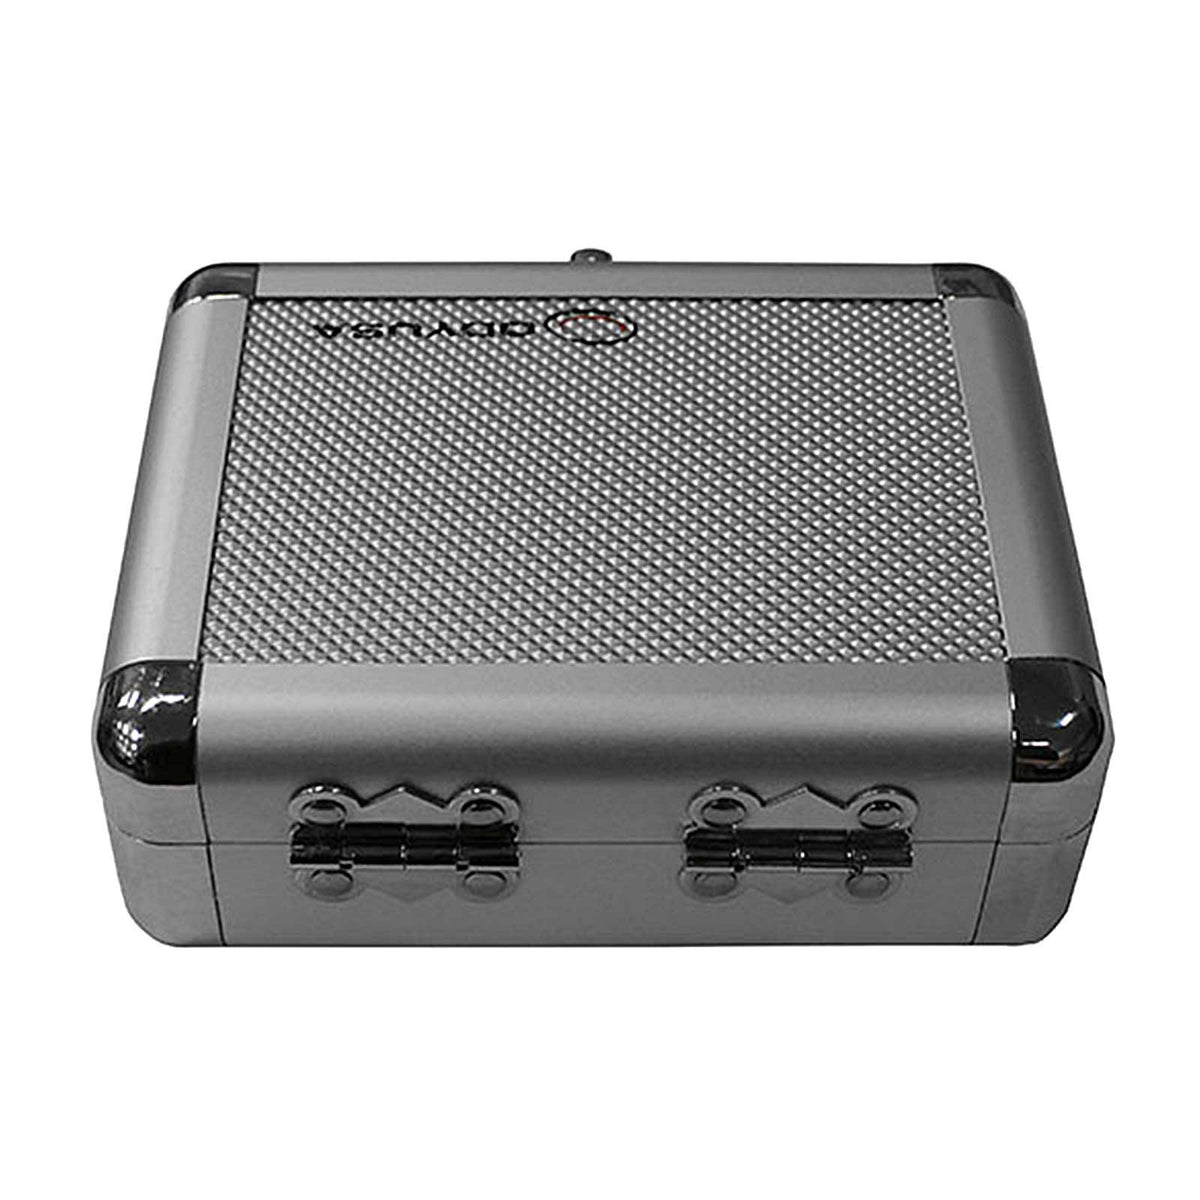 Odyssey: KCC-2 Pro Cartridge Case - Silver Textured (KCC2PR2SD)